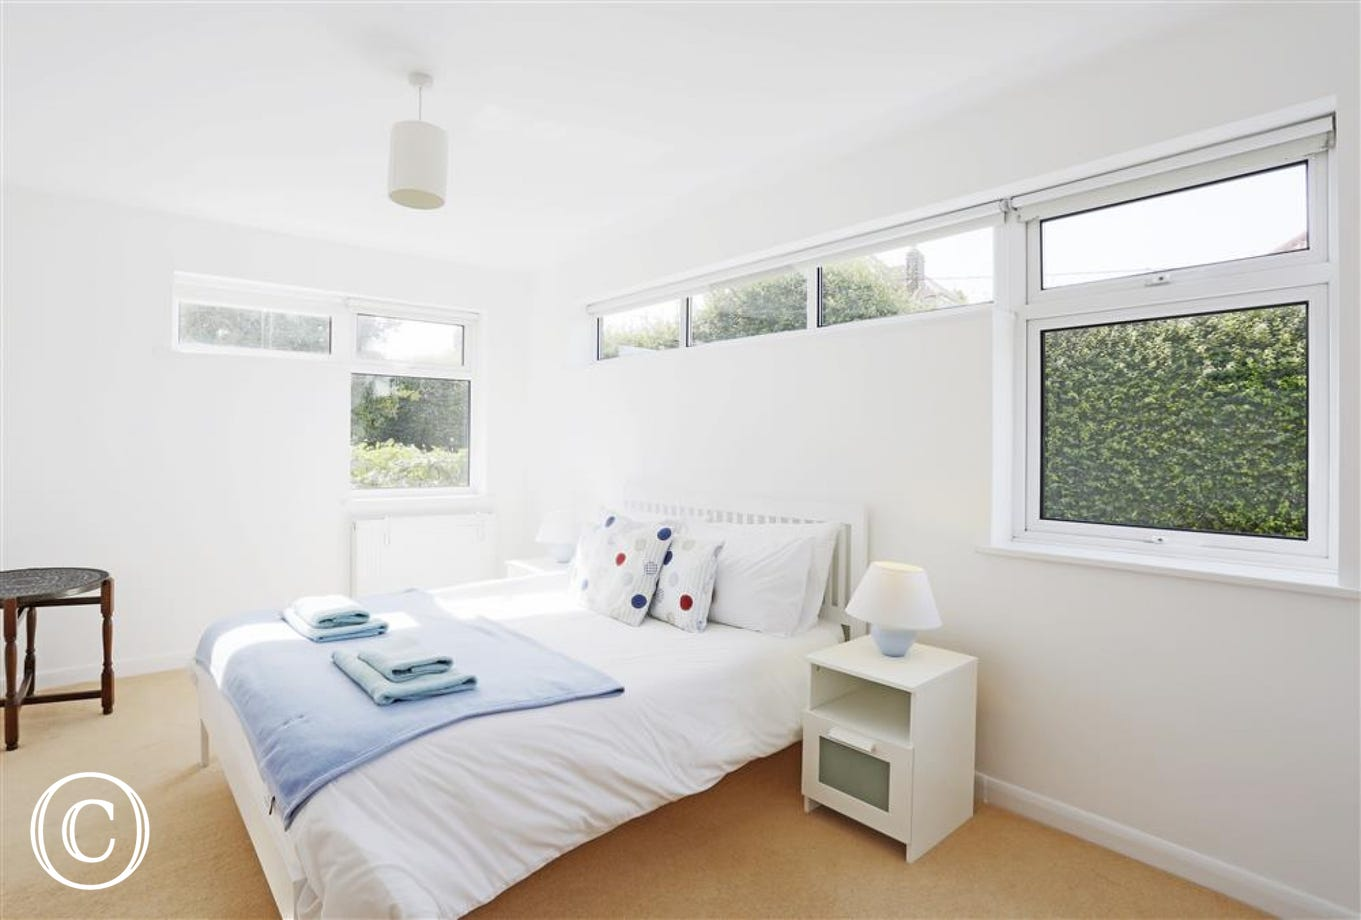 This double bedded room on the first floor has a view into the garden below and plenty of wardrobe space.